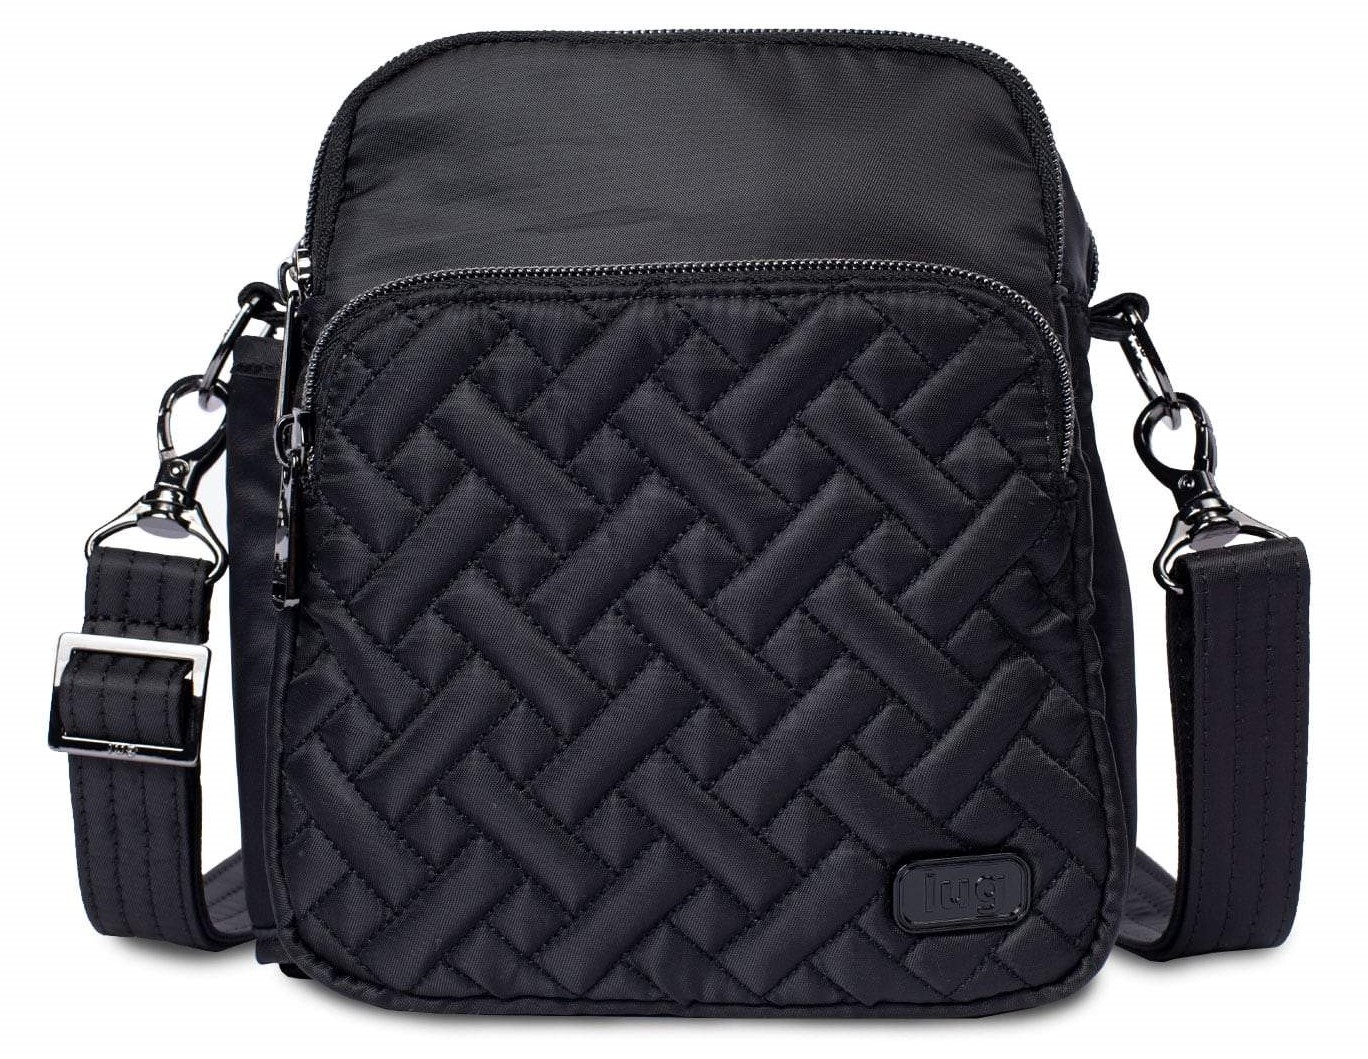 LUG - Can Can 2 - Convertible Crossbody/Belt Bag  - Midnight Black